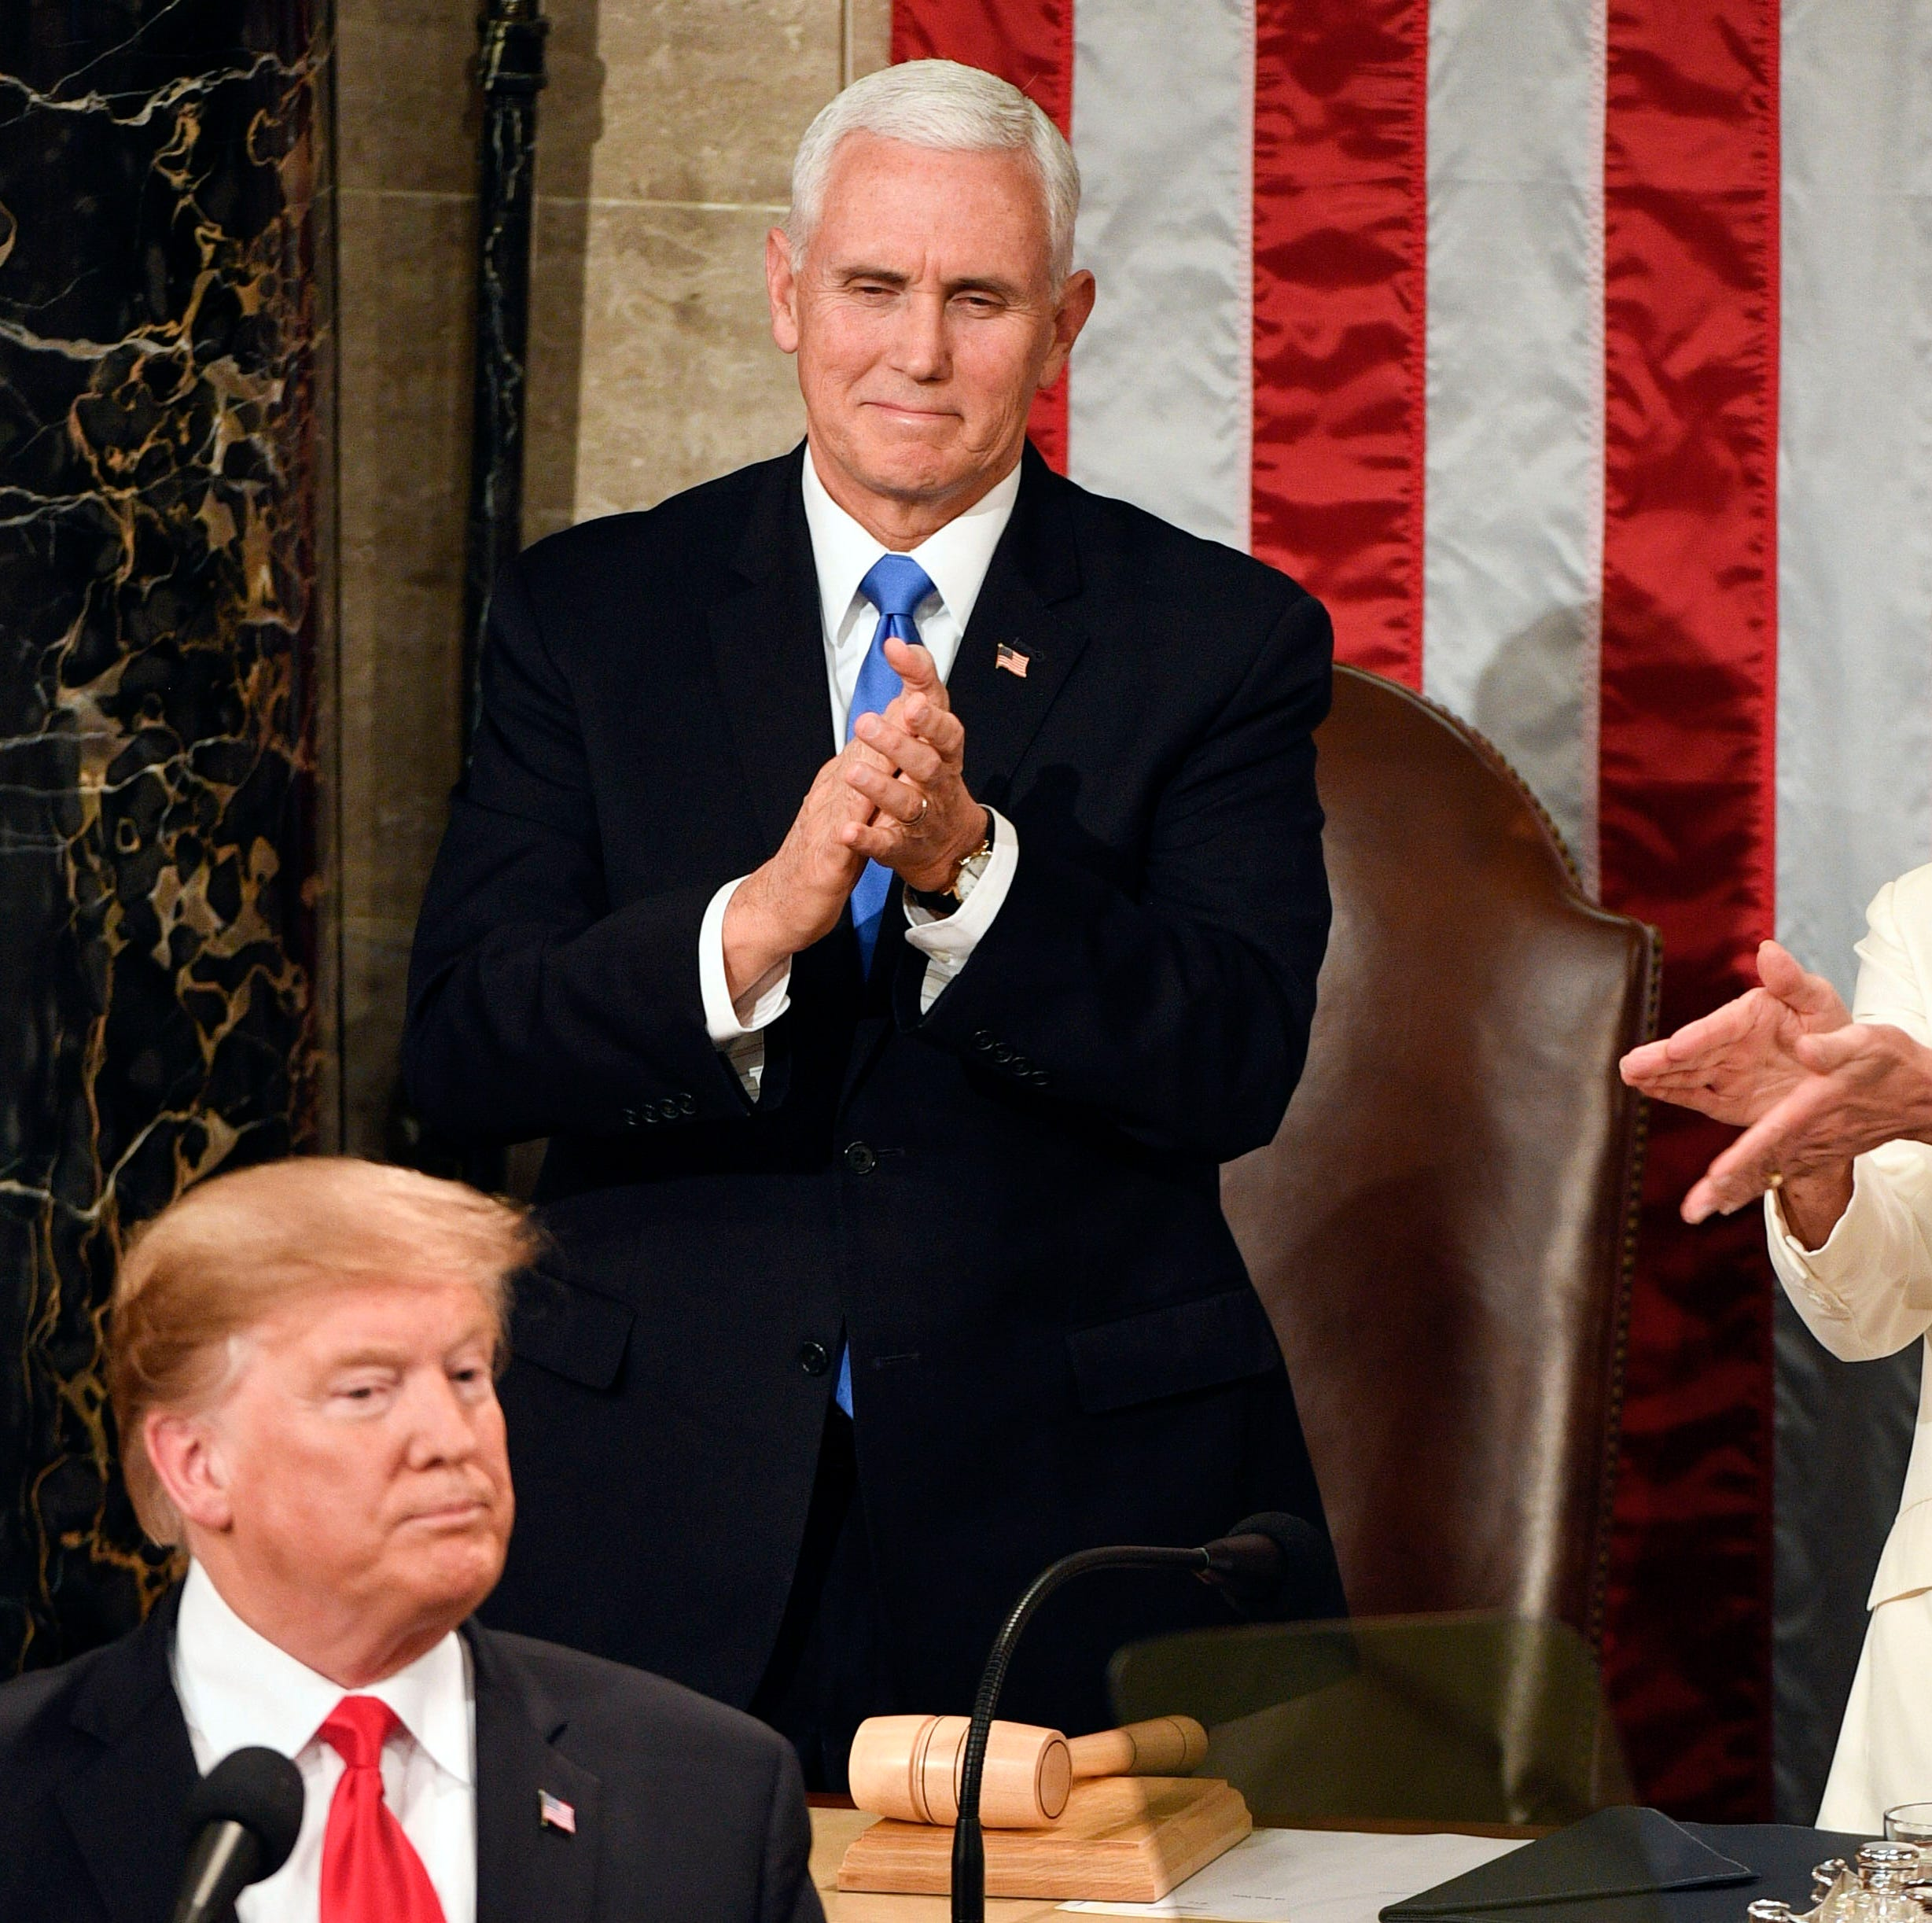 Speaker of the House Nancy Pelosi, D-Calif., claps toward President Donald Trump as he delivers the State of the Union address from the House chamber of the United States Capitol in Washington Feb. 5, 2019. Vice President Mike Pence is behind Trump.